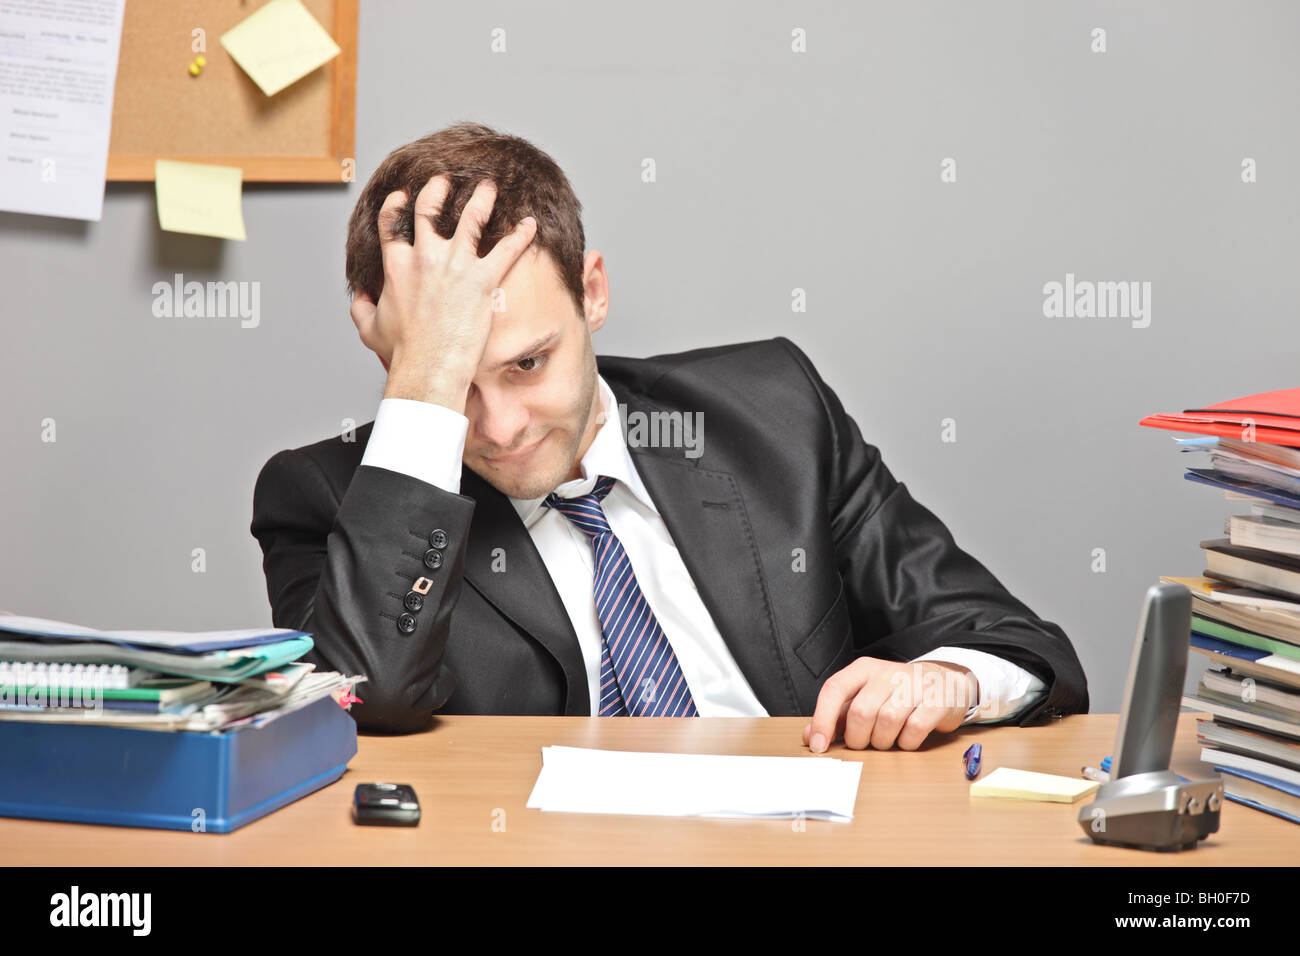 Sad businessman in the office - Stock Image